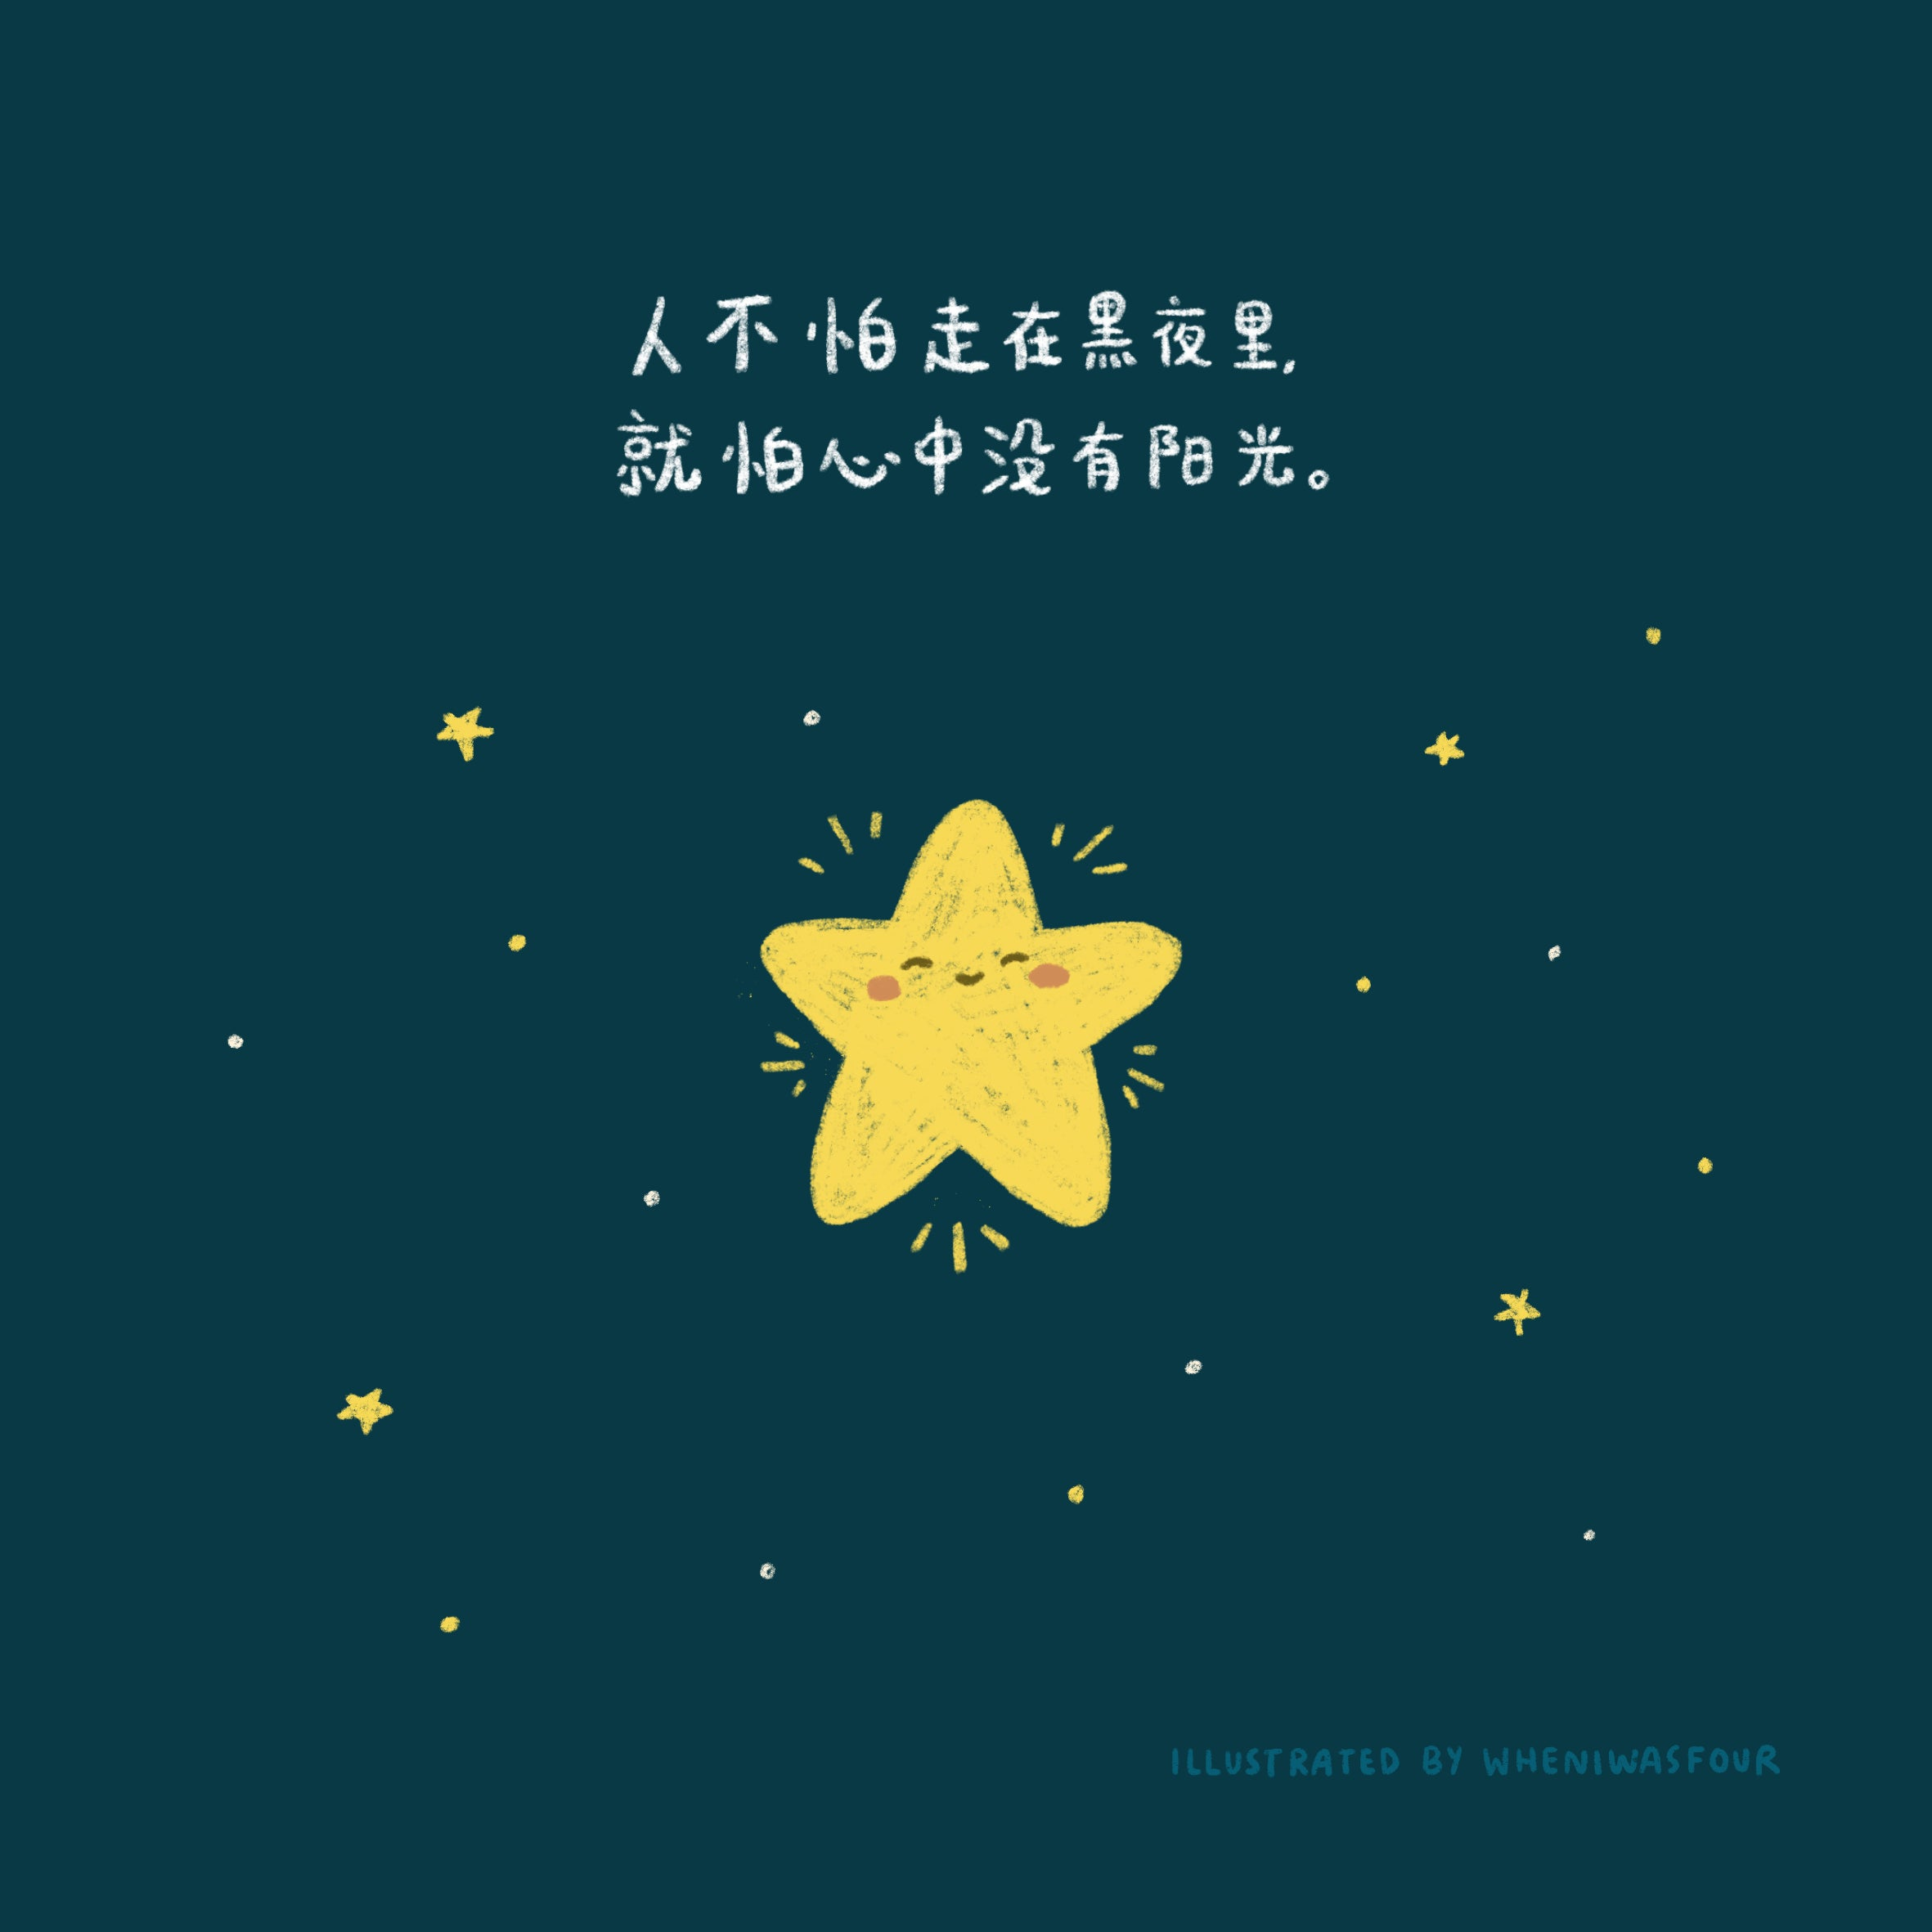 digital illustration of a chinese quote with a bright big star in the centre surrounded by many small other stars and against a dark background